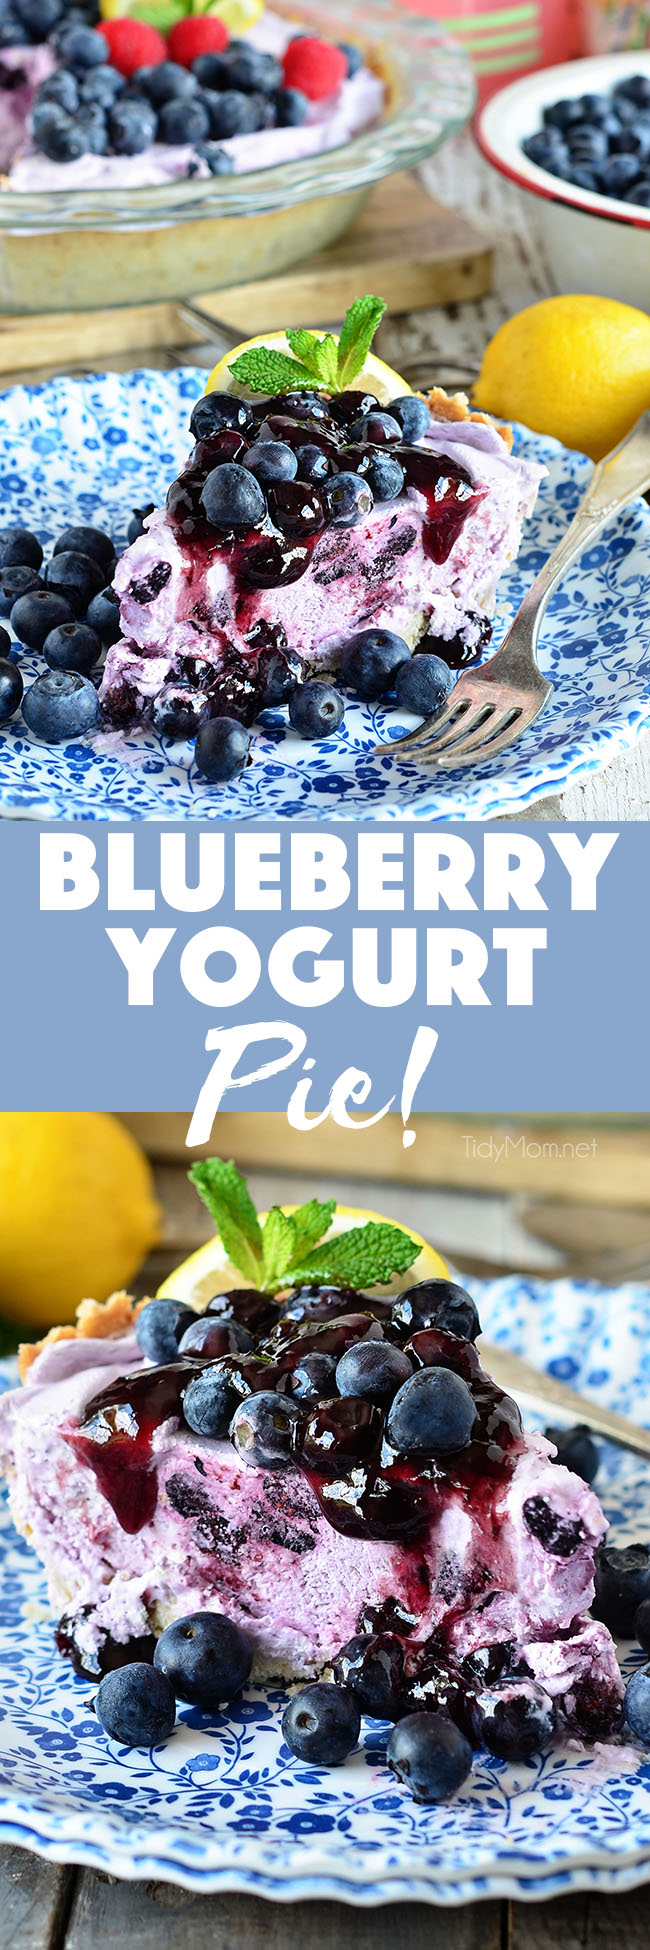 Summer Berry And Yogurt Tart Recipe — Dishmaps